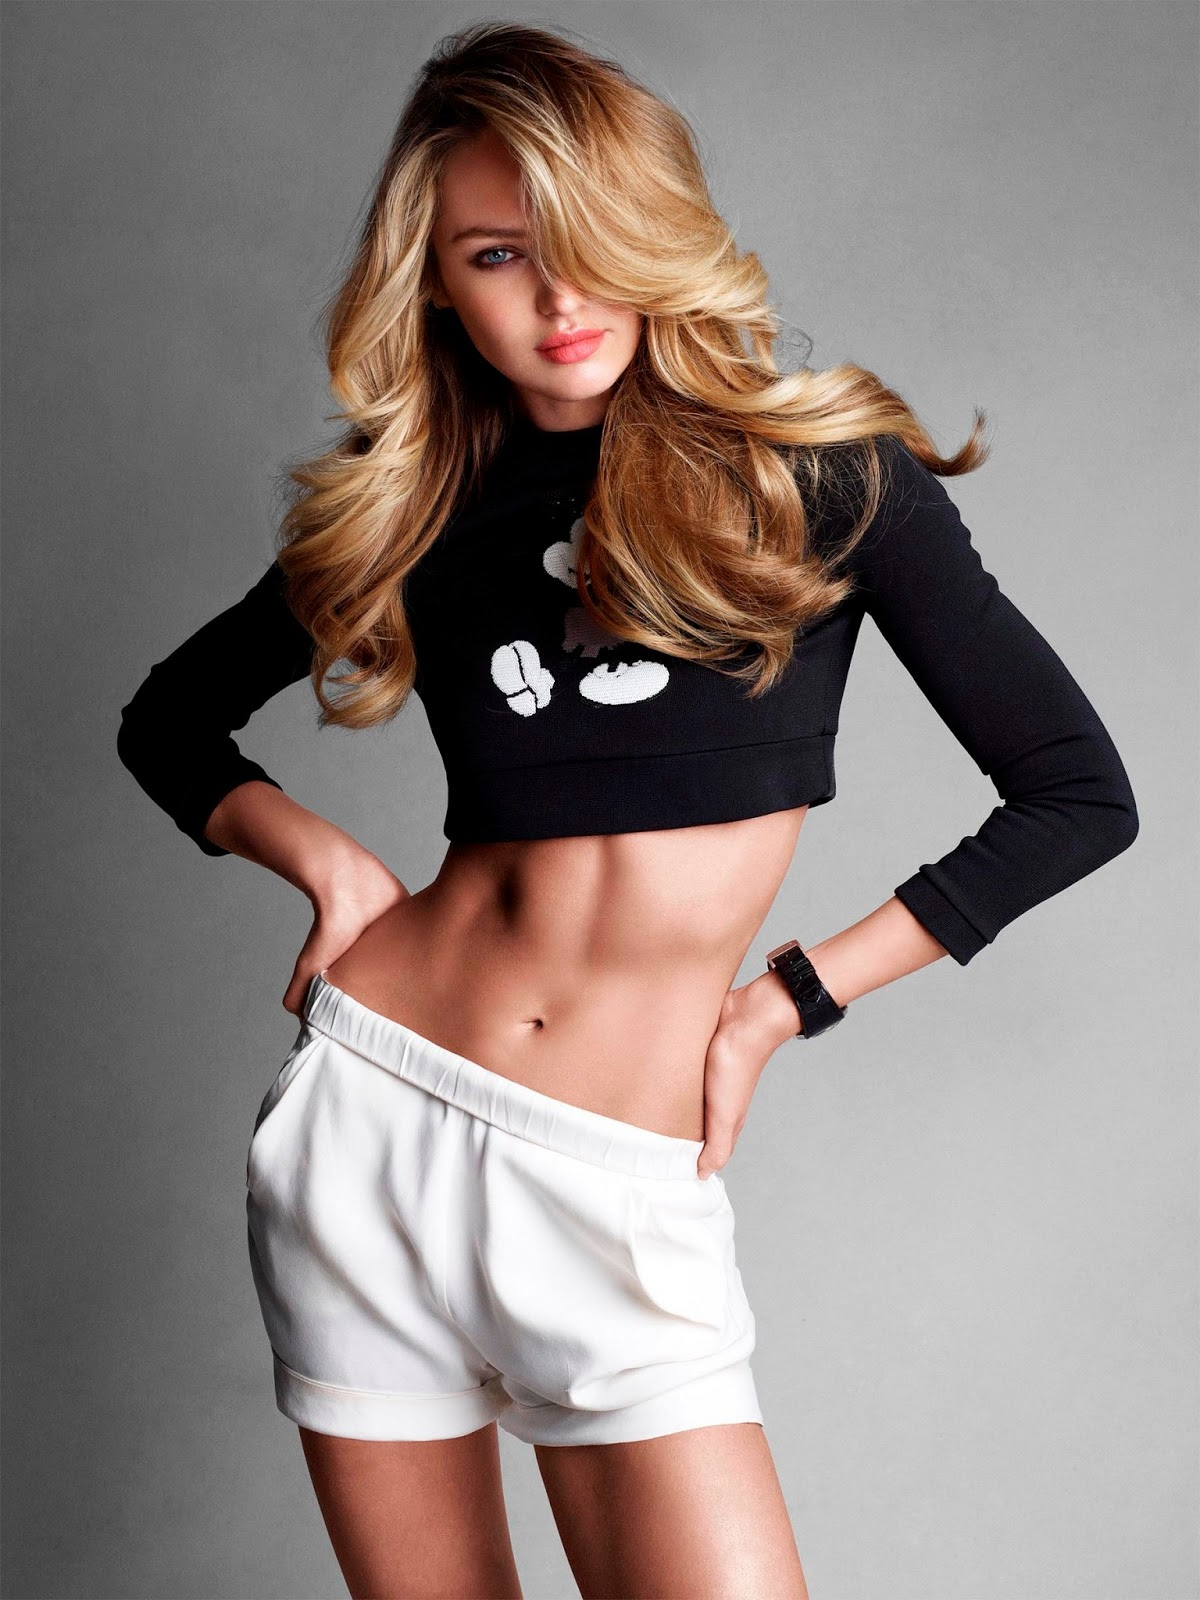 Model Candice Swanepoel In Vogue Australia June 2013